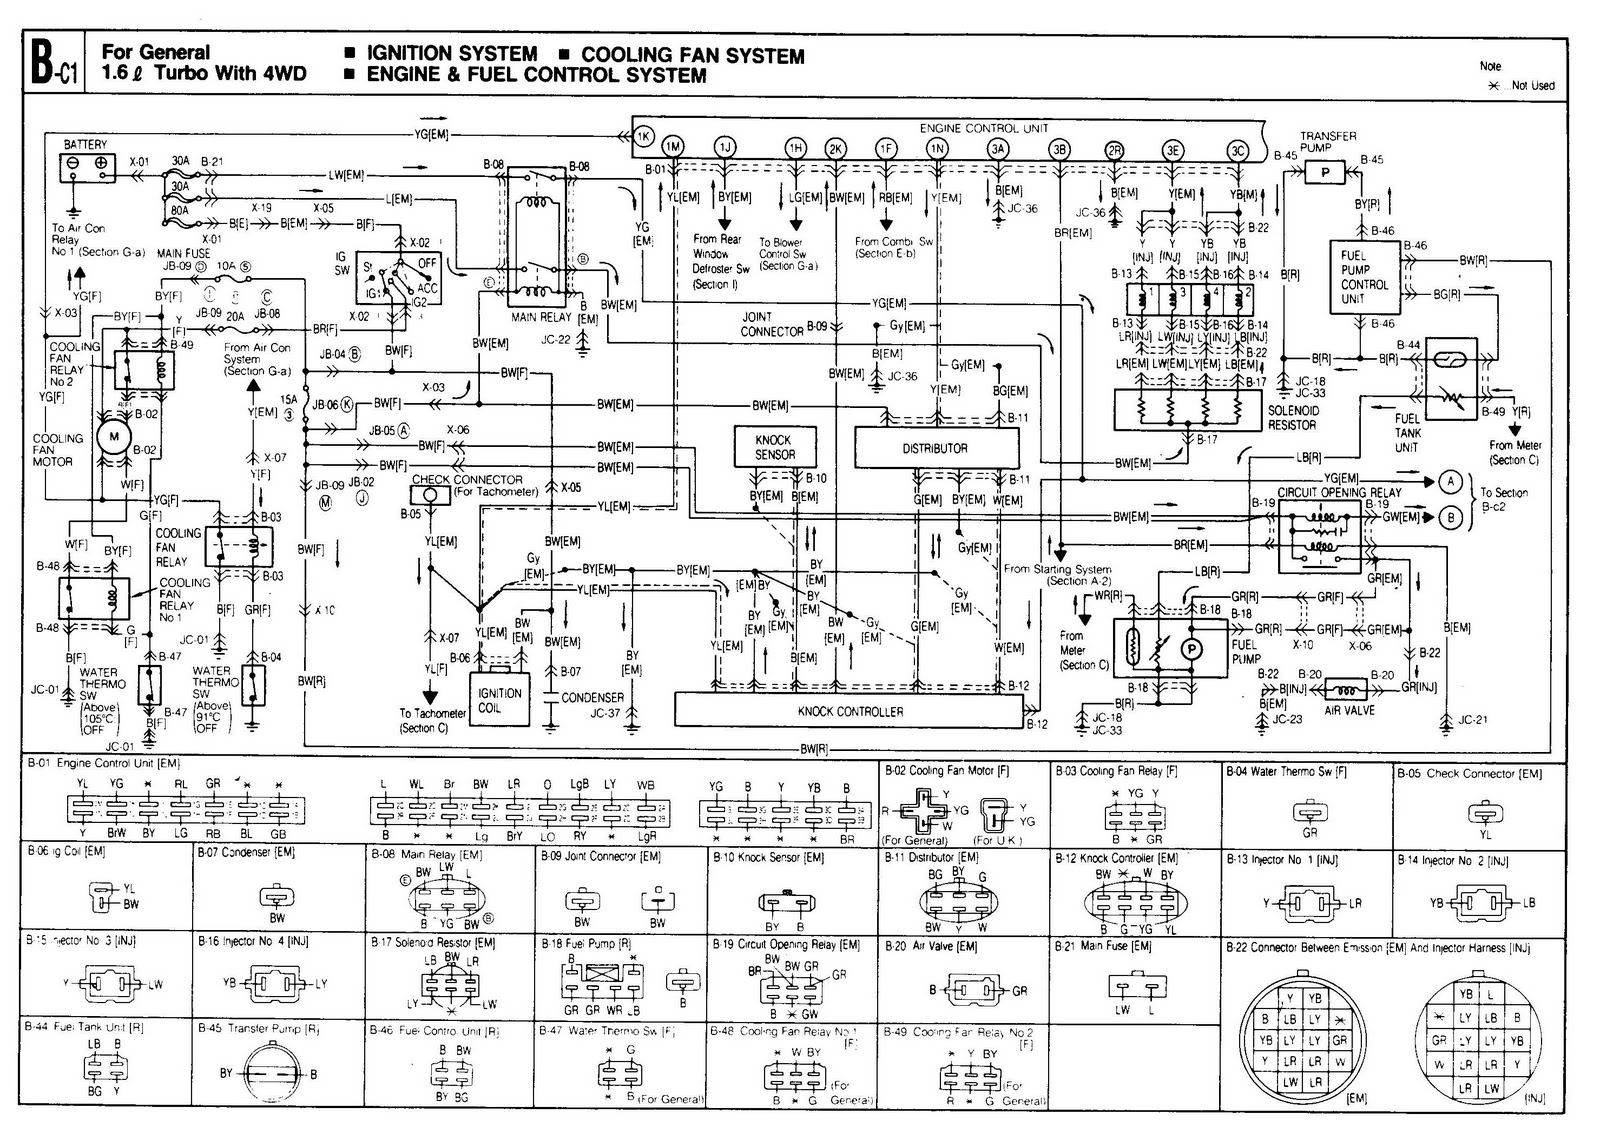 mazda tribute wiring diagram pdf 2003 mazda tribute wiring diagram mazda's garage: b6t manual servis